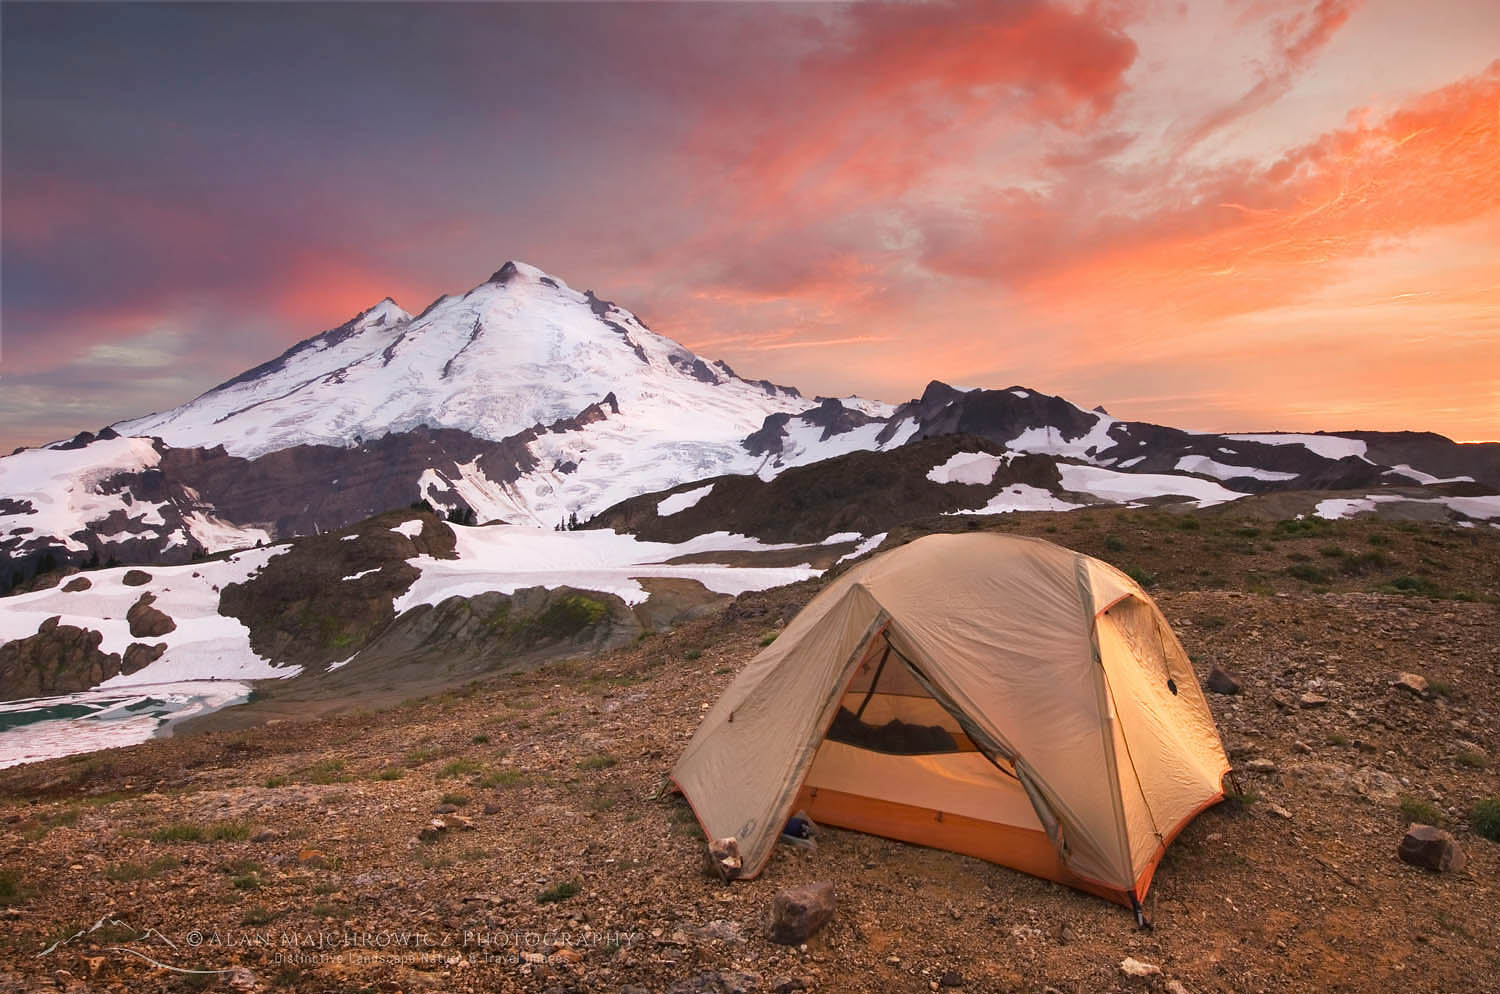 Mount Baker Wilderness campsite Backpacking Photography Tips